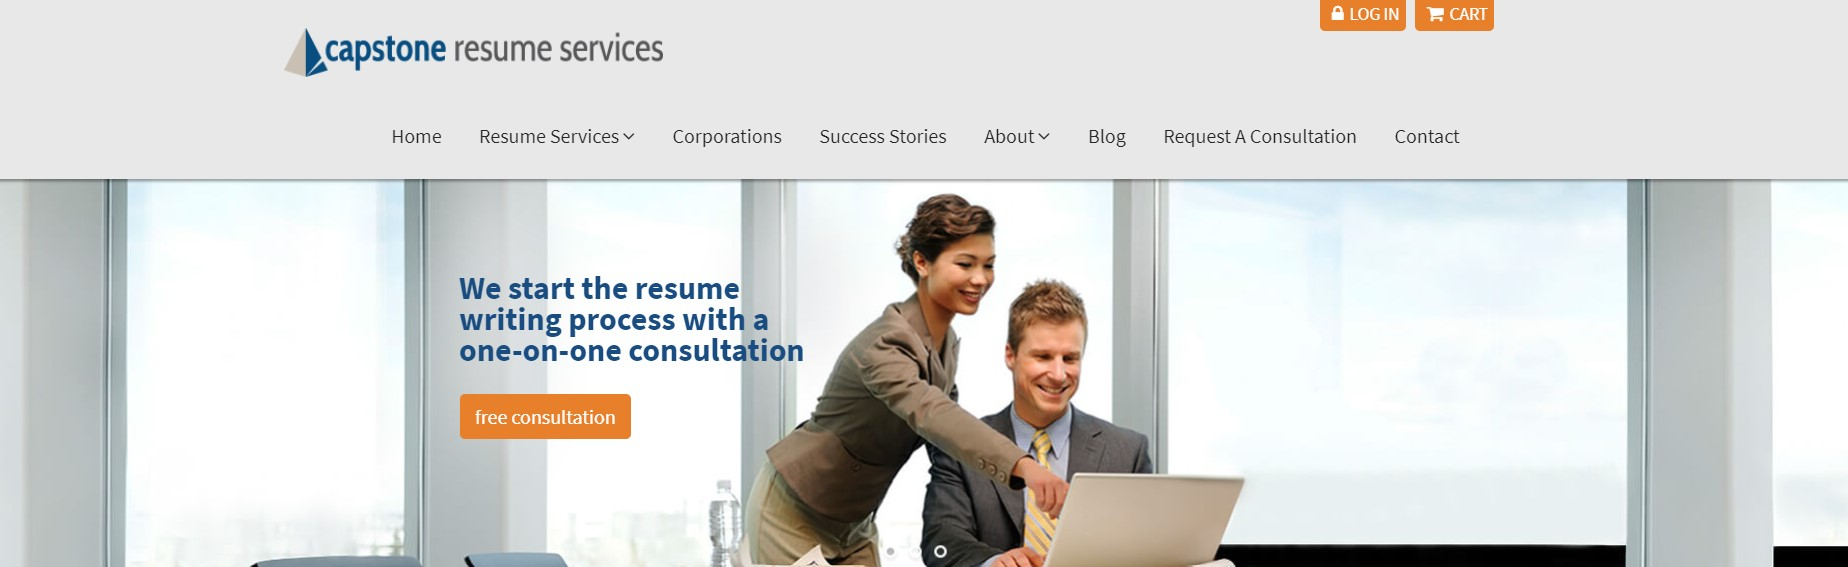 10 Best Resume Writers - screenshot of Capstone Resume Services' homepage